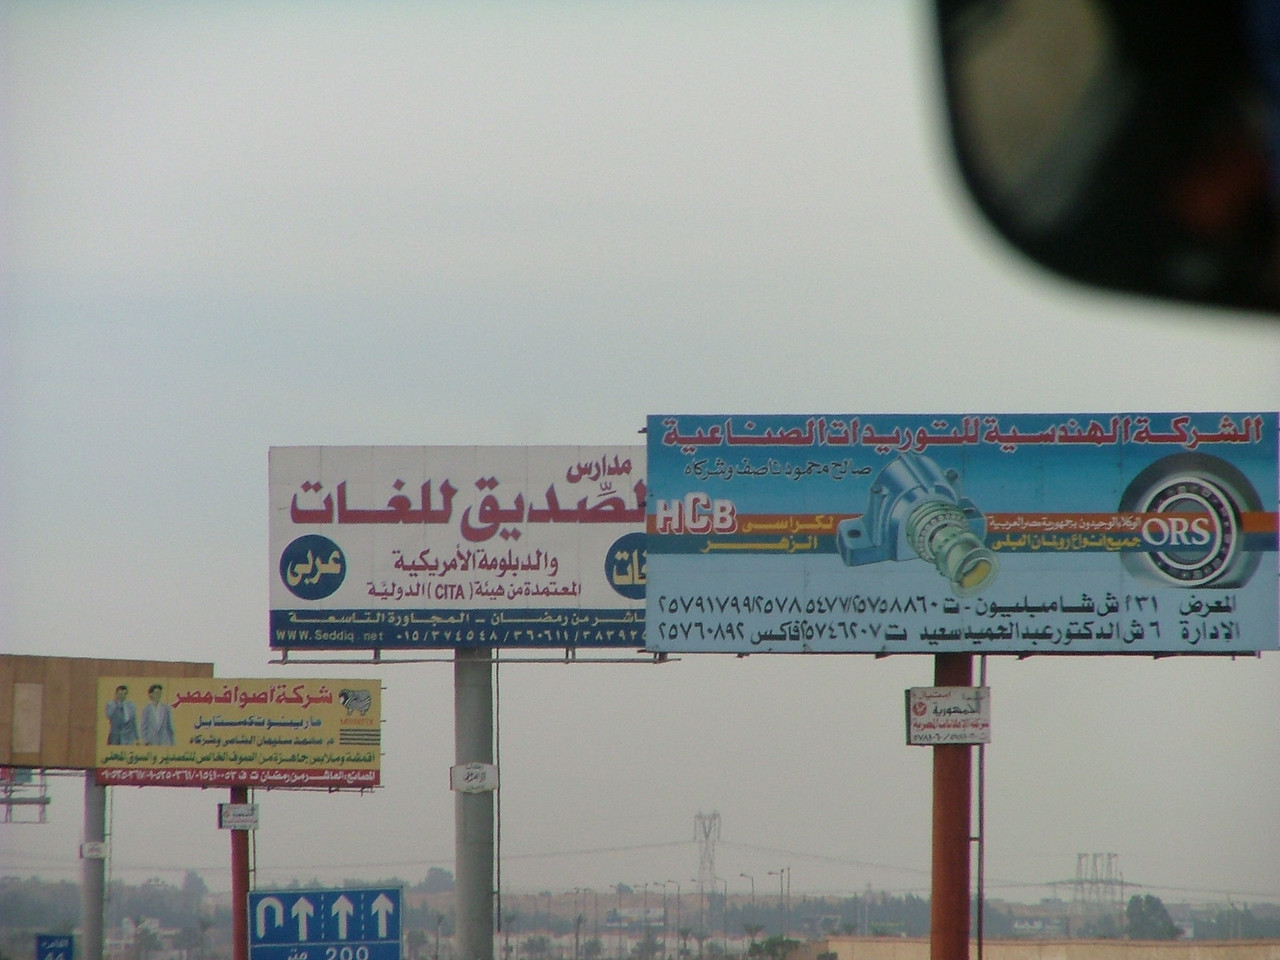 On the road from Port Said to Cairo.